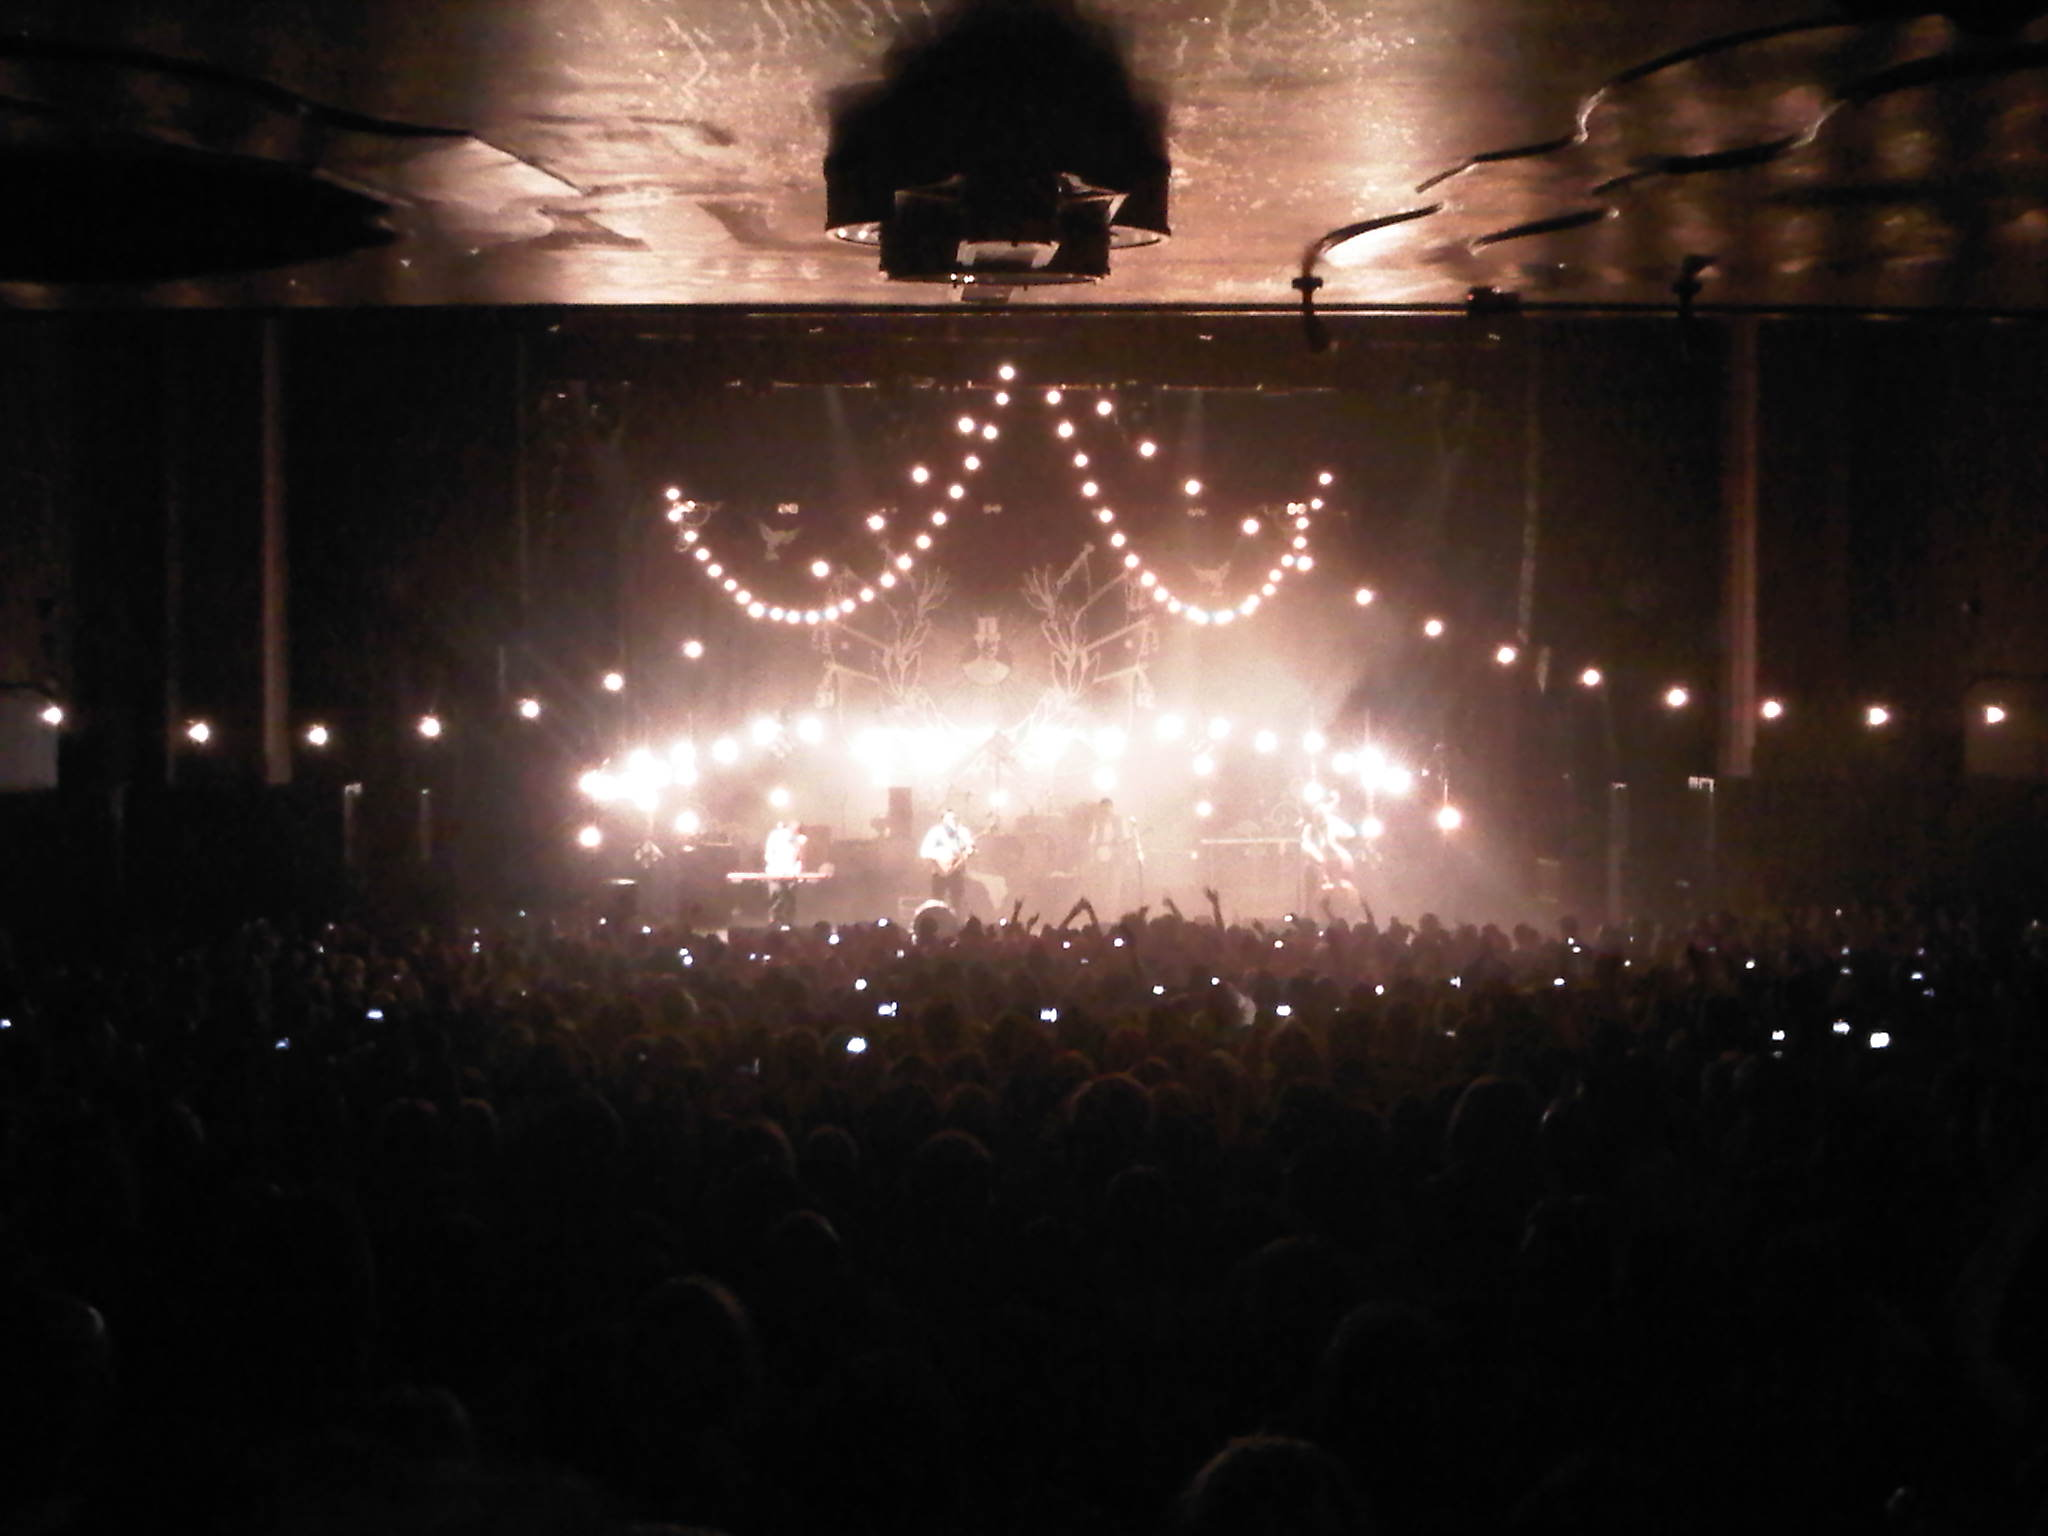 Festoon for days! Mumford & Sons